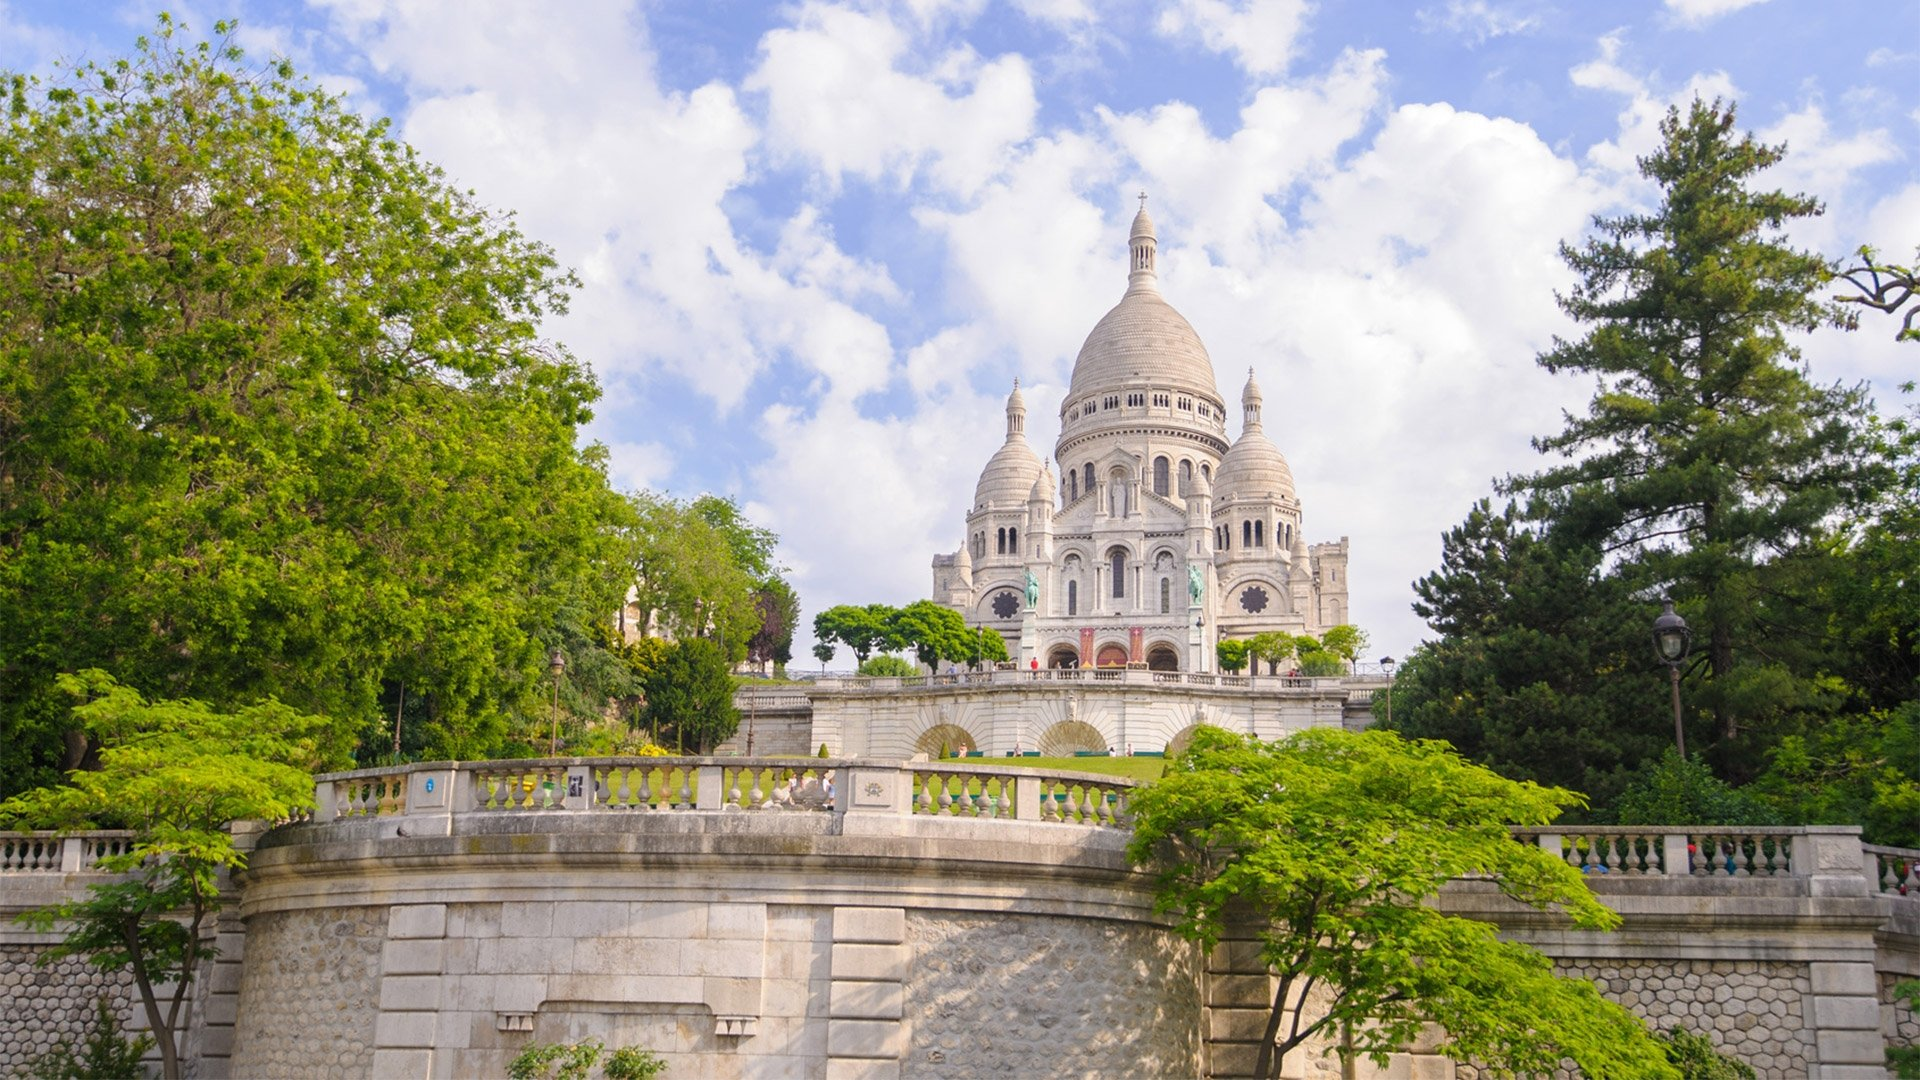 The 18th and 9th Arrondissements: Montmartre and the Moulin Rouge